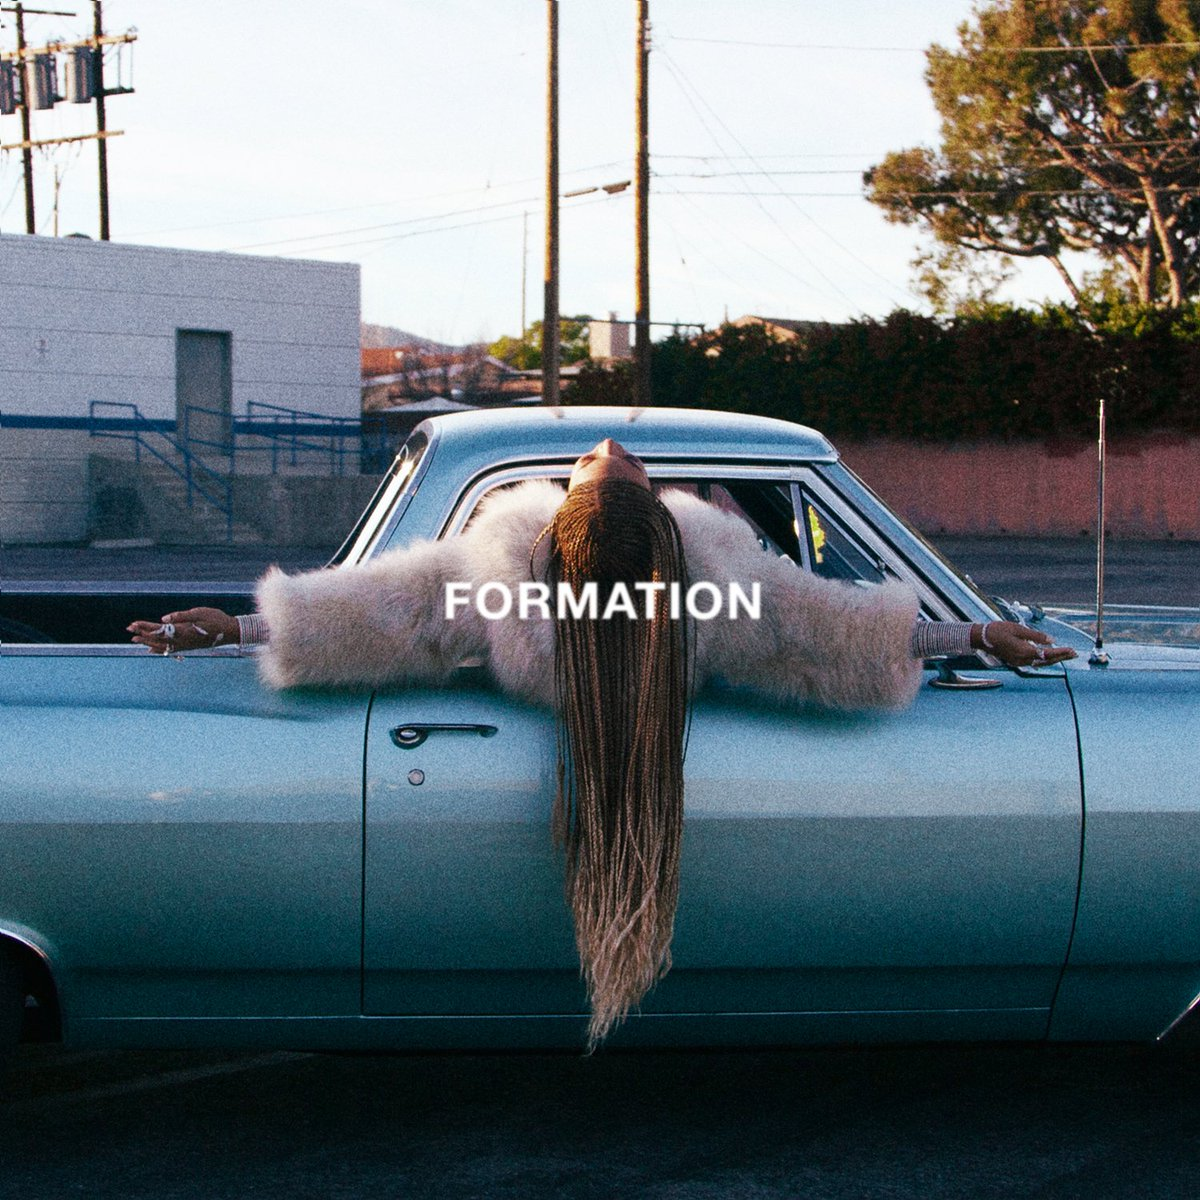 Beyoncé's top 3 biggest-selling songs post-#Beychella:  • Formation • Sorry • Hold Up   http:// bit.ly/2Ho4hHU  &nbsp;  <br>http://pic.twitter.com/bcIbZw5gSz